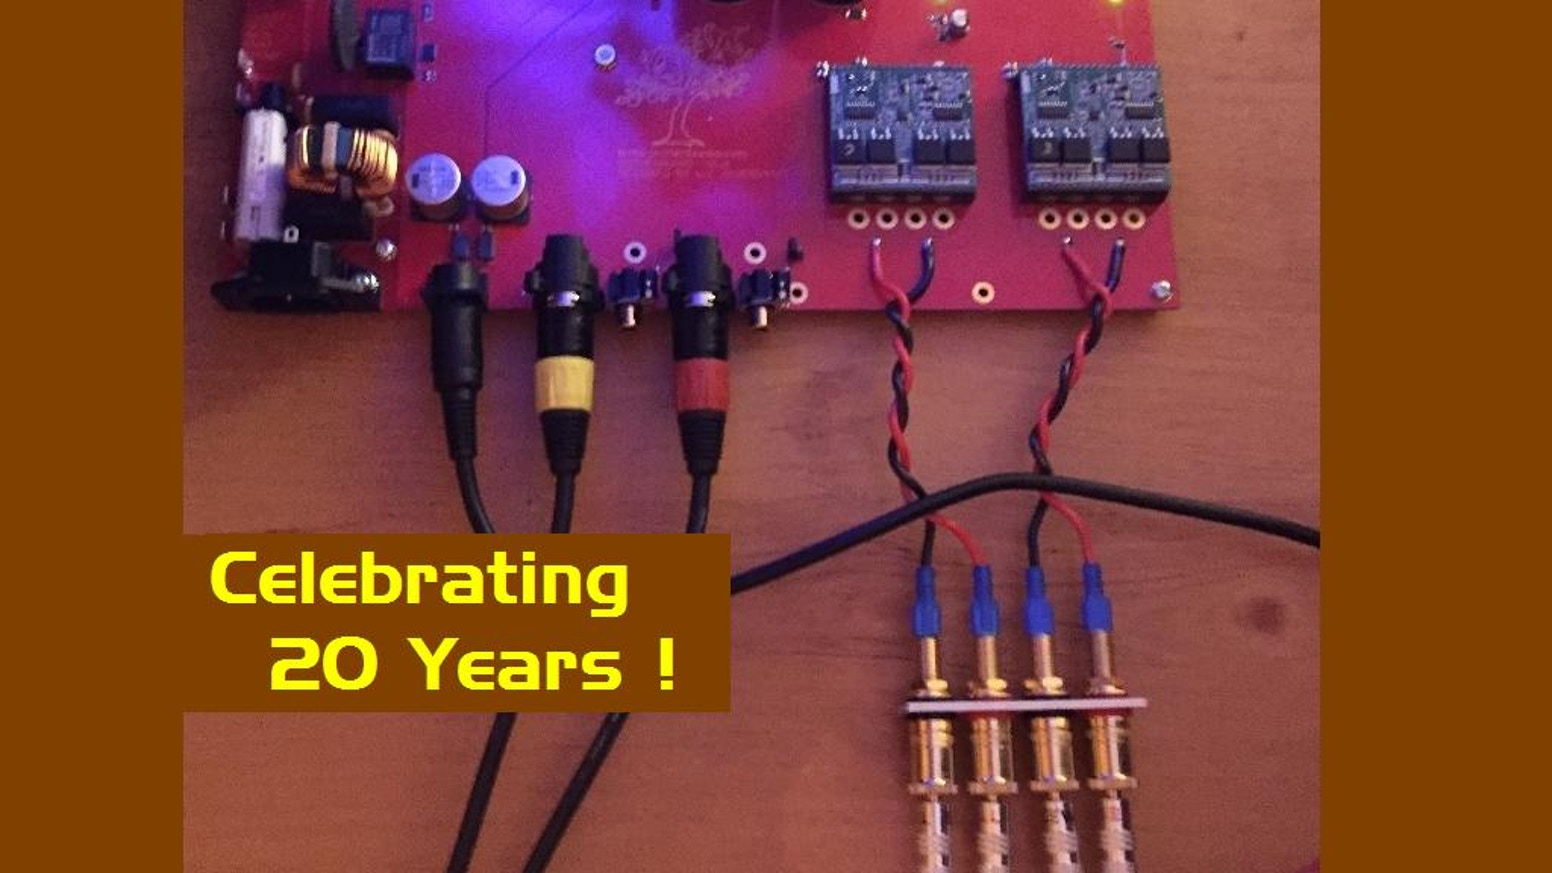 Maraschino Video Series By Digital Amplifier Company Kickstarter 400w Audio Schema And Layout Amp Co Is Planning A About The Cherry Product Line